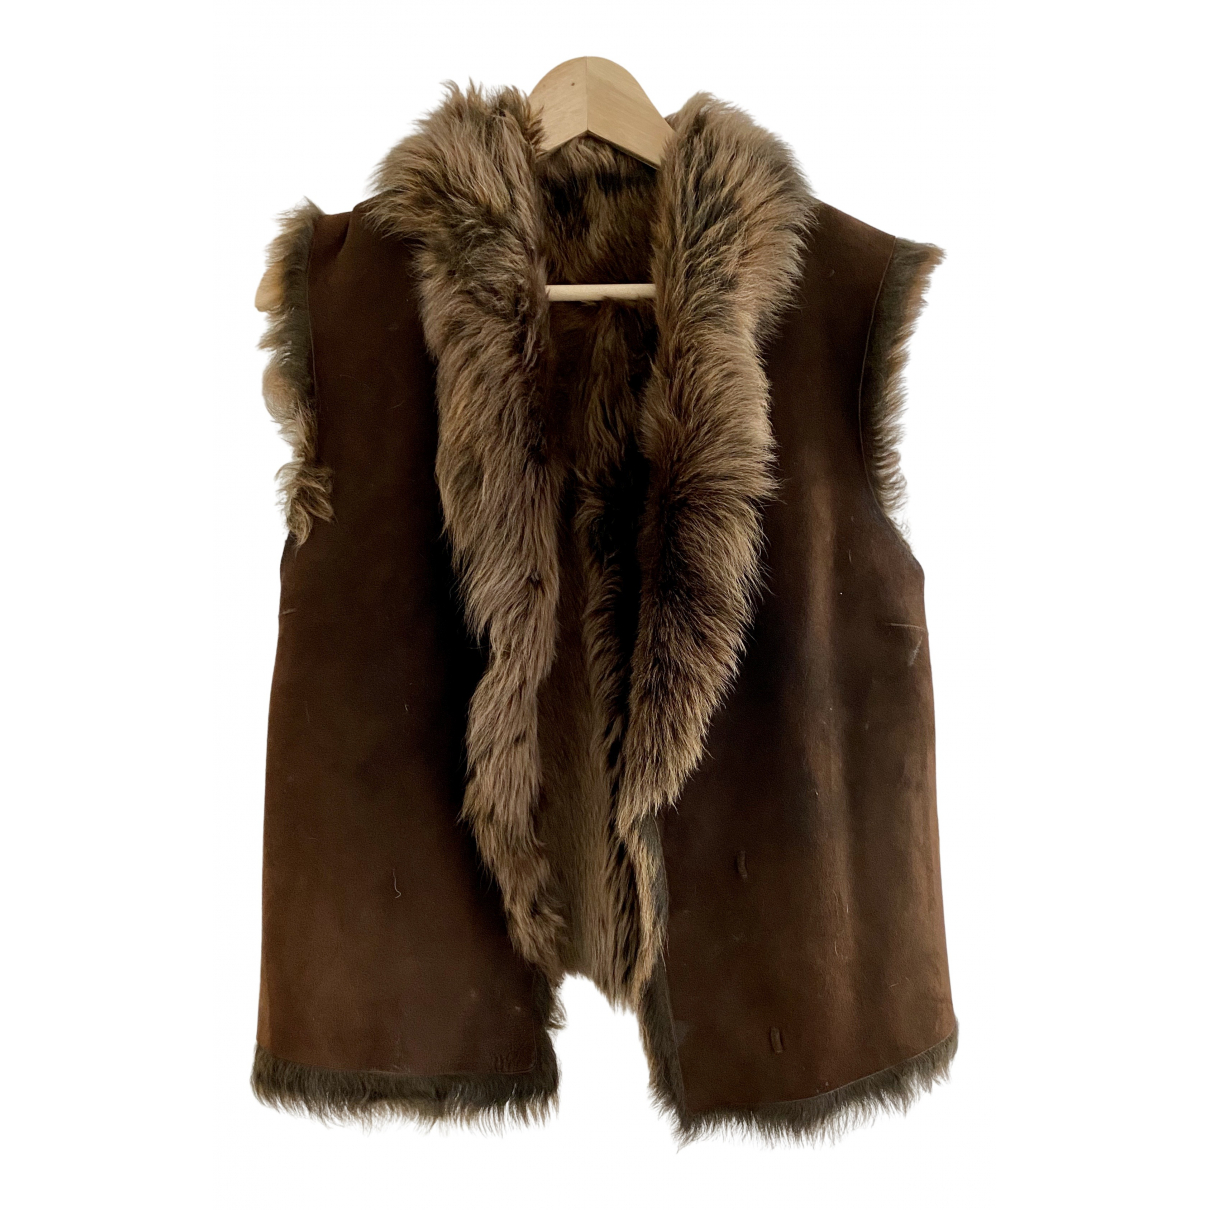 Joseph \N Brown Shearling jacket for Women 36 FR